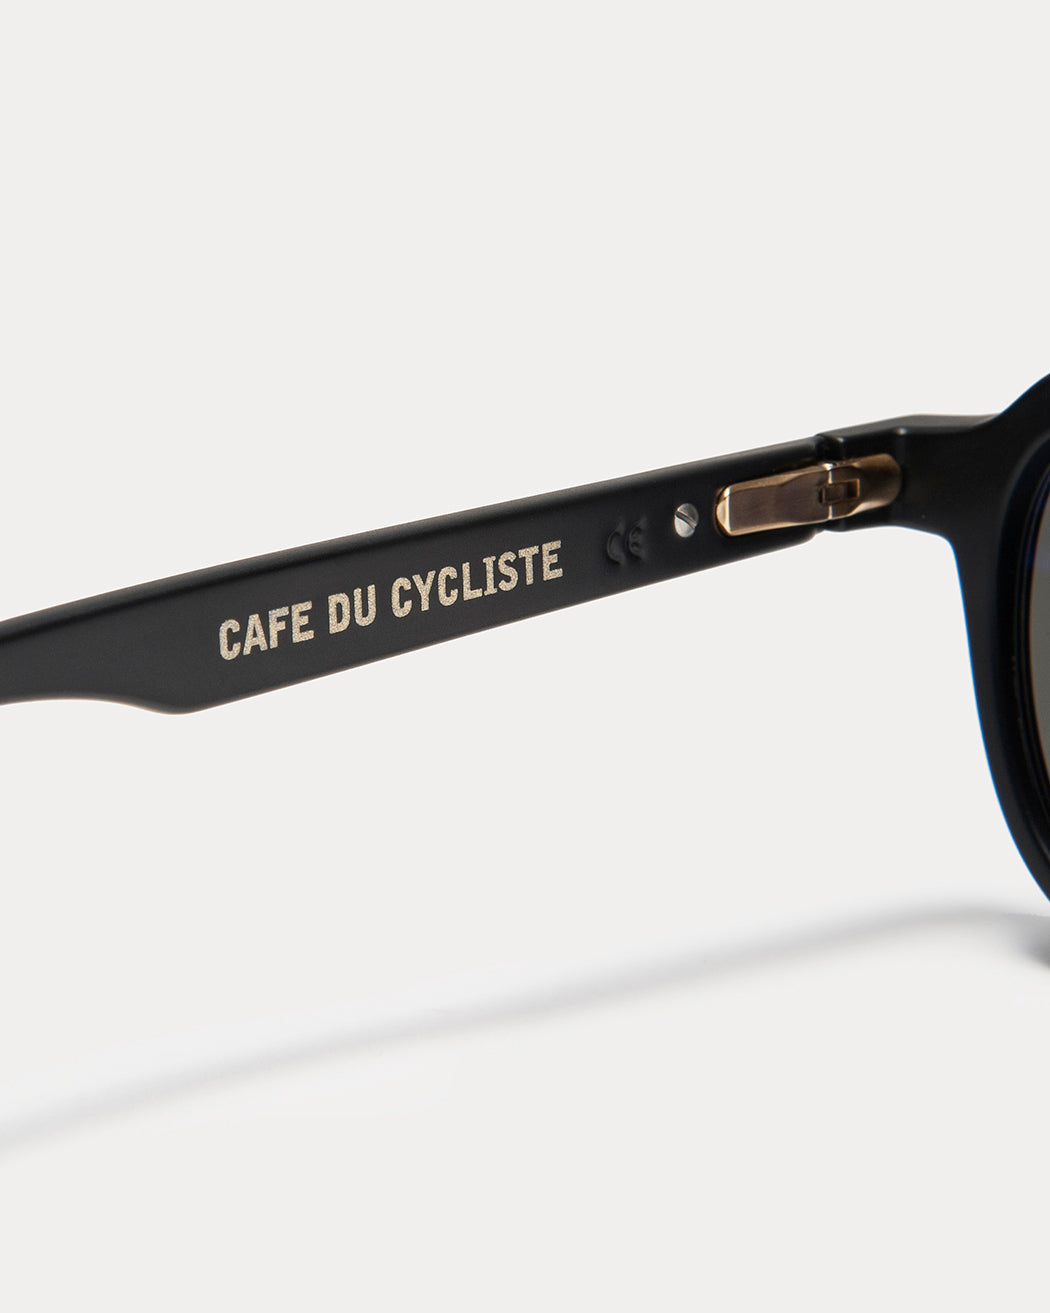 AO x Café du Cycliste in Matte Black